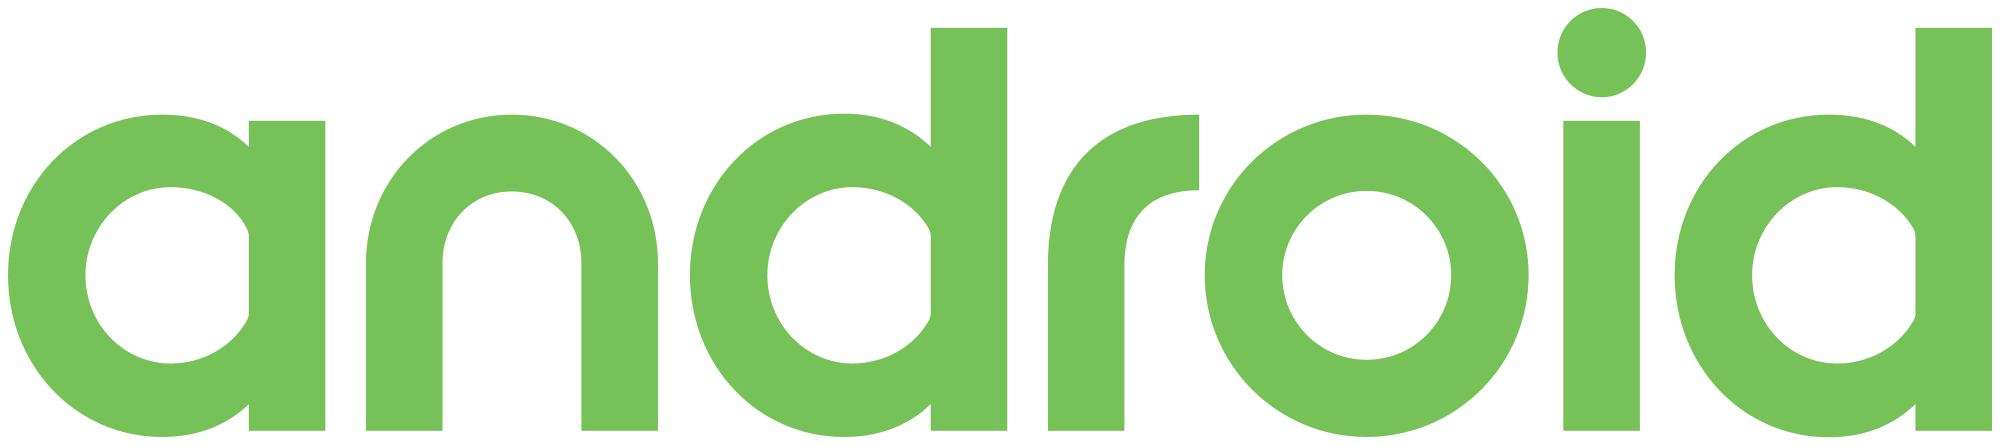 Android logo png. File svg wikimedia commons